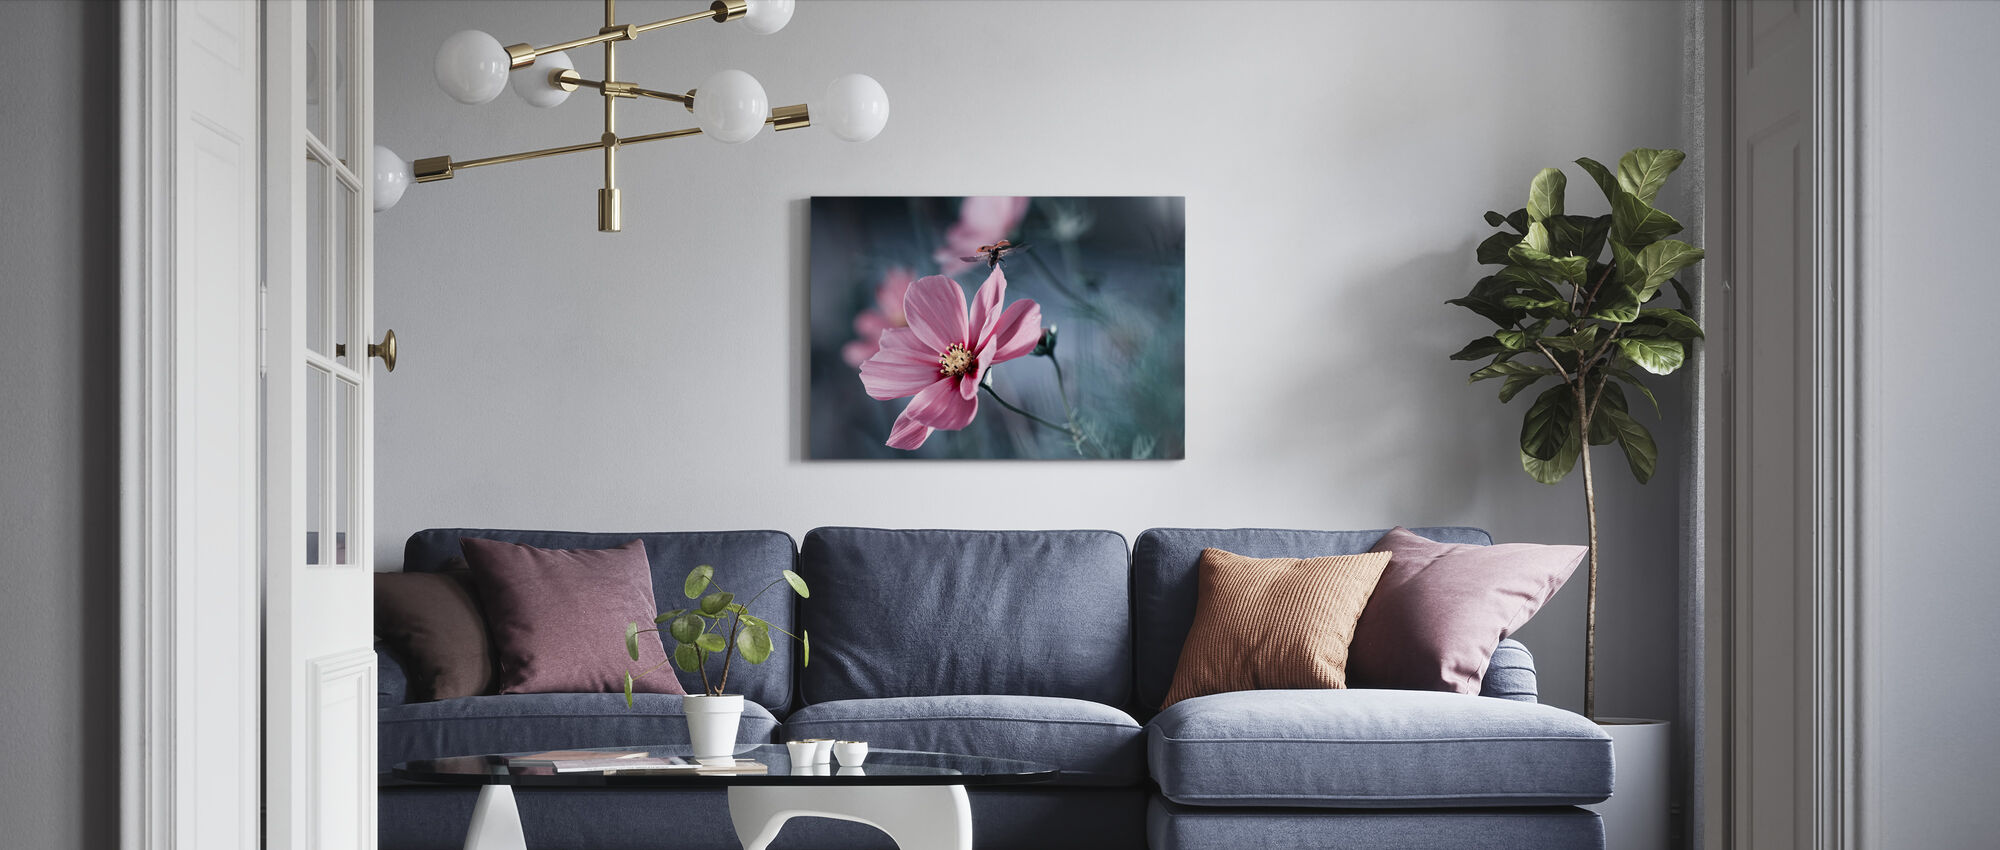 Enchanted Ladybug - Canvas print - Living Room